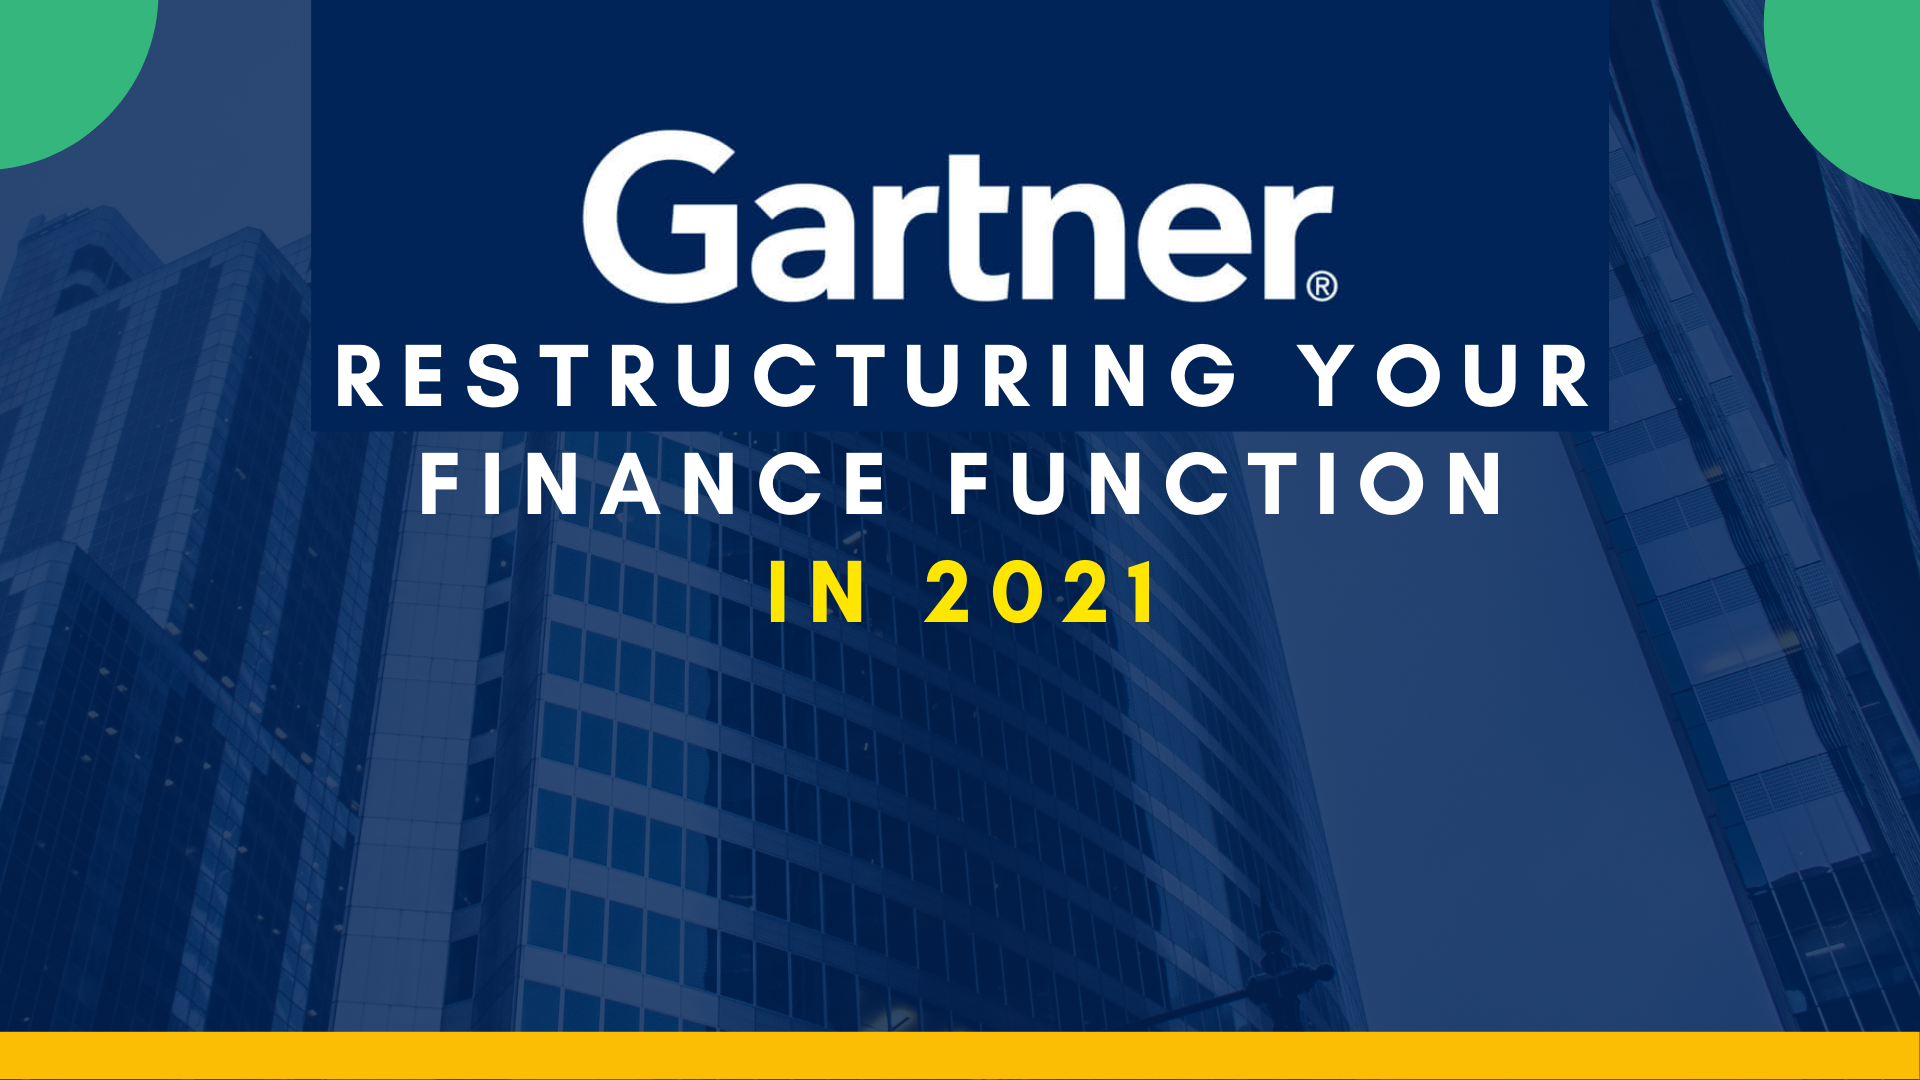 Fintech Report: It's Time to Redesign Your Finance Function Completely